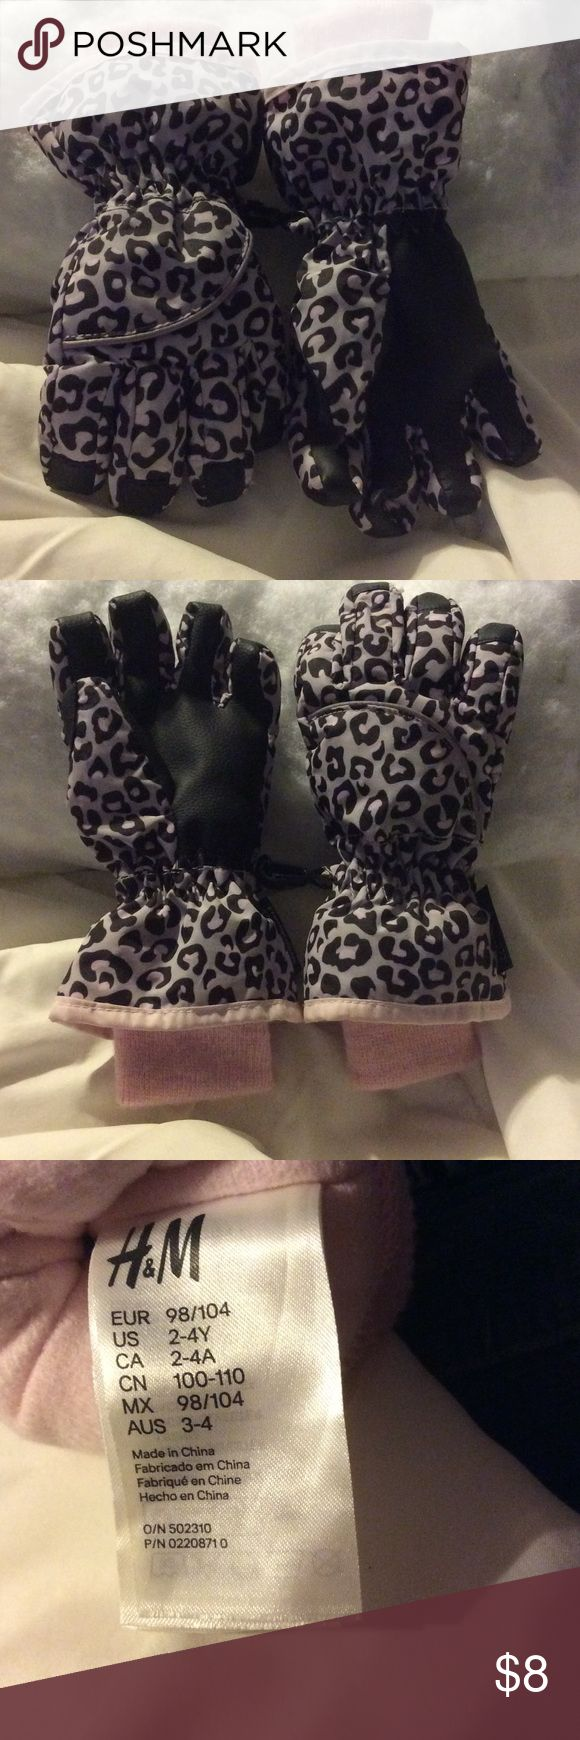 Leather work gloves screwfix - H M Pink Grey Leopard Gloves Super Cute Thinsulate Gloves With